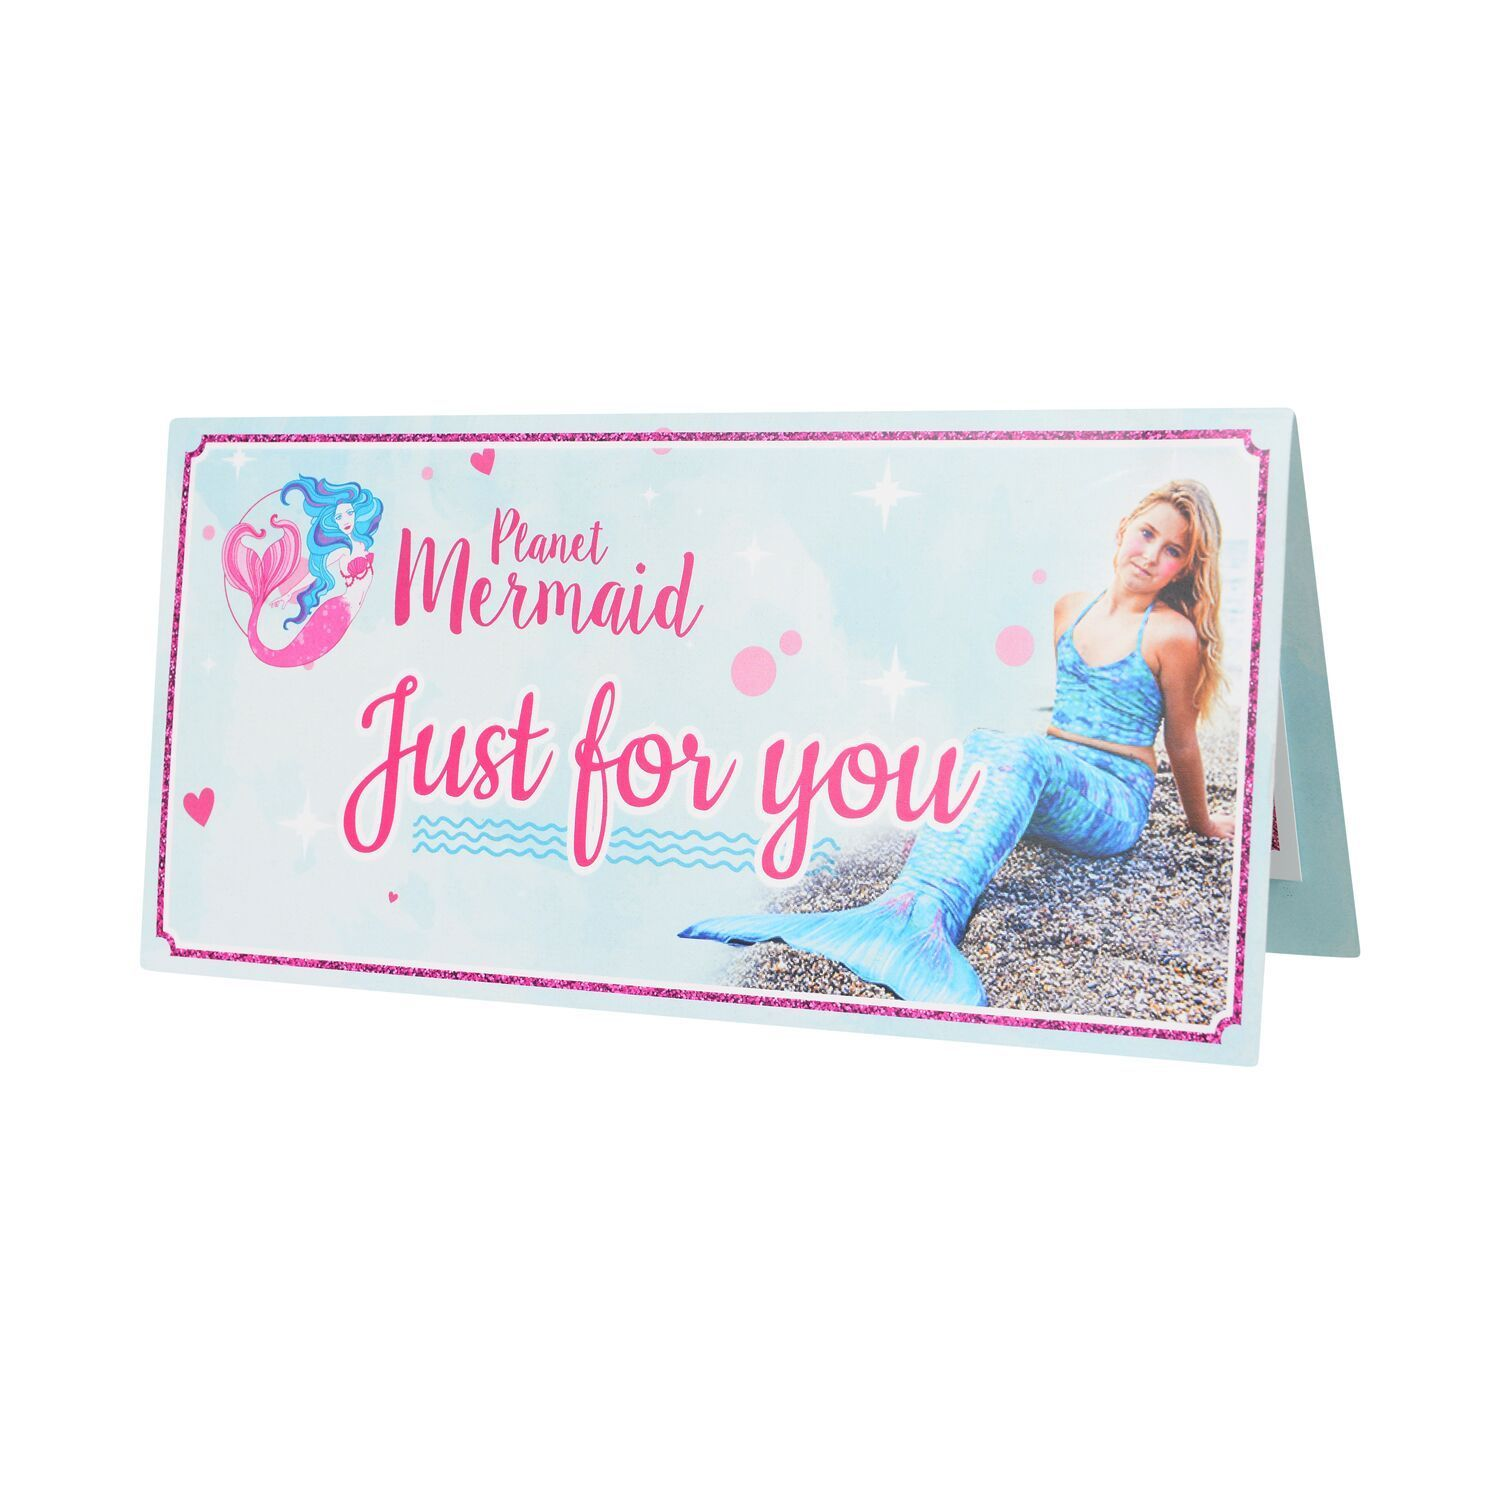 Just for you Mermaid Gift Card from Planet Mermaid